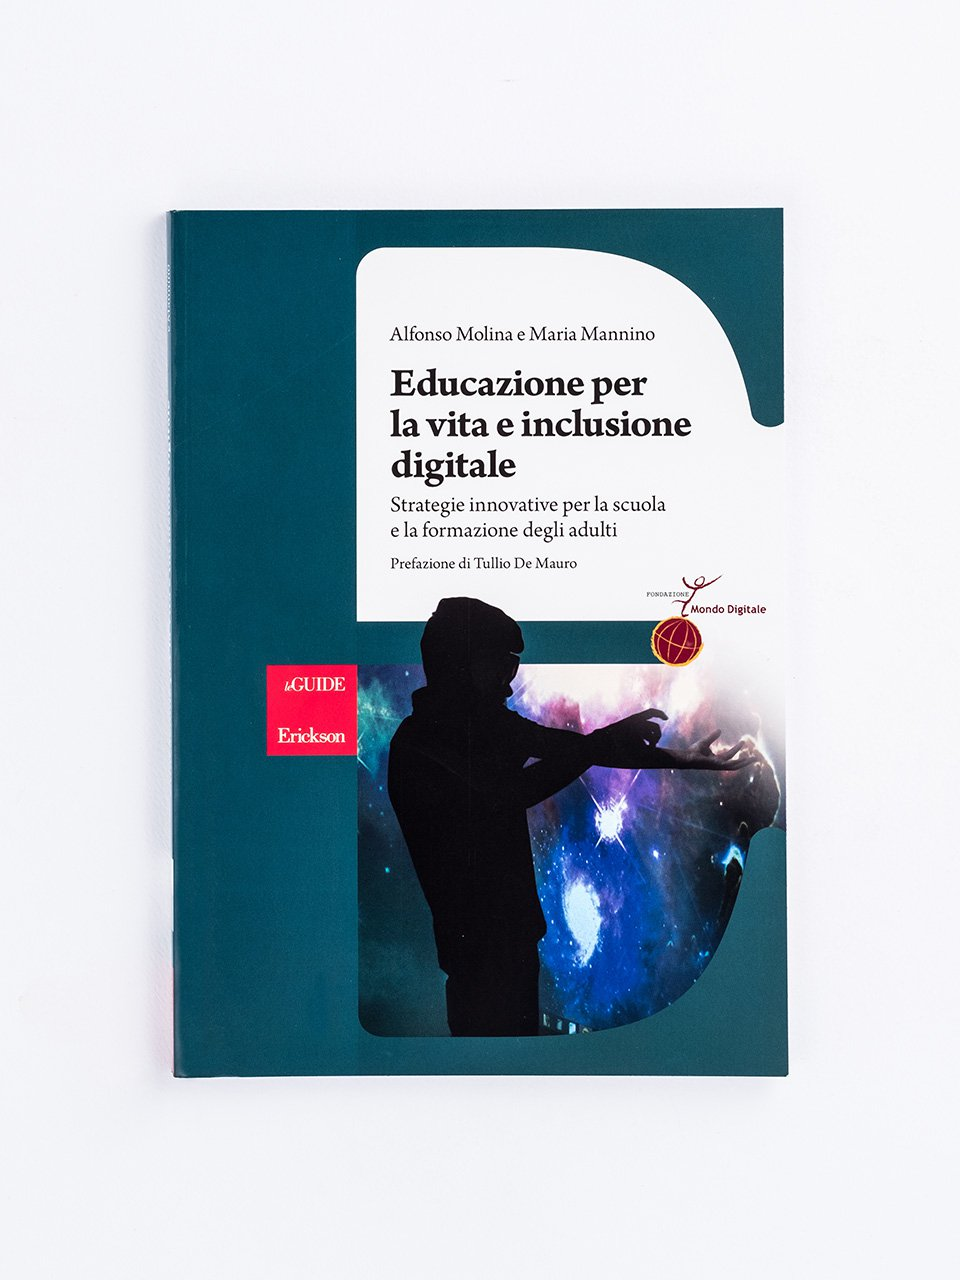 Educazione per la vita e inclusione digitale - Metacognizione - Erickson